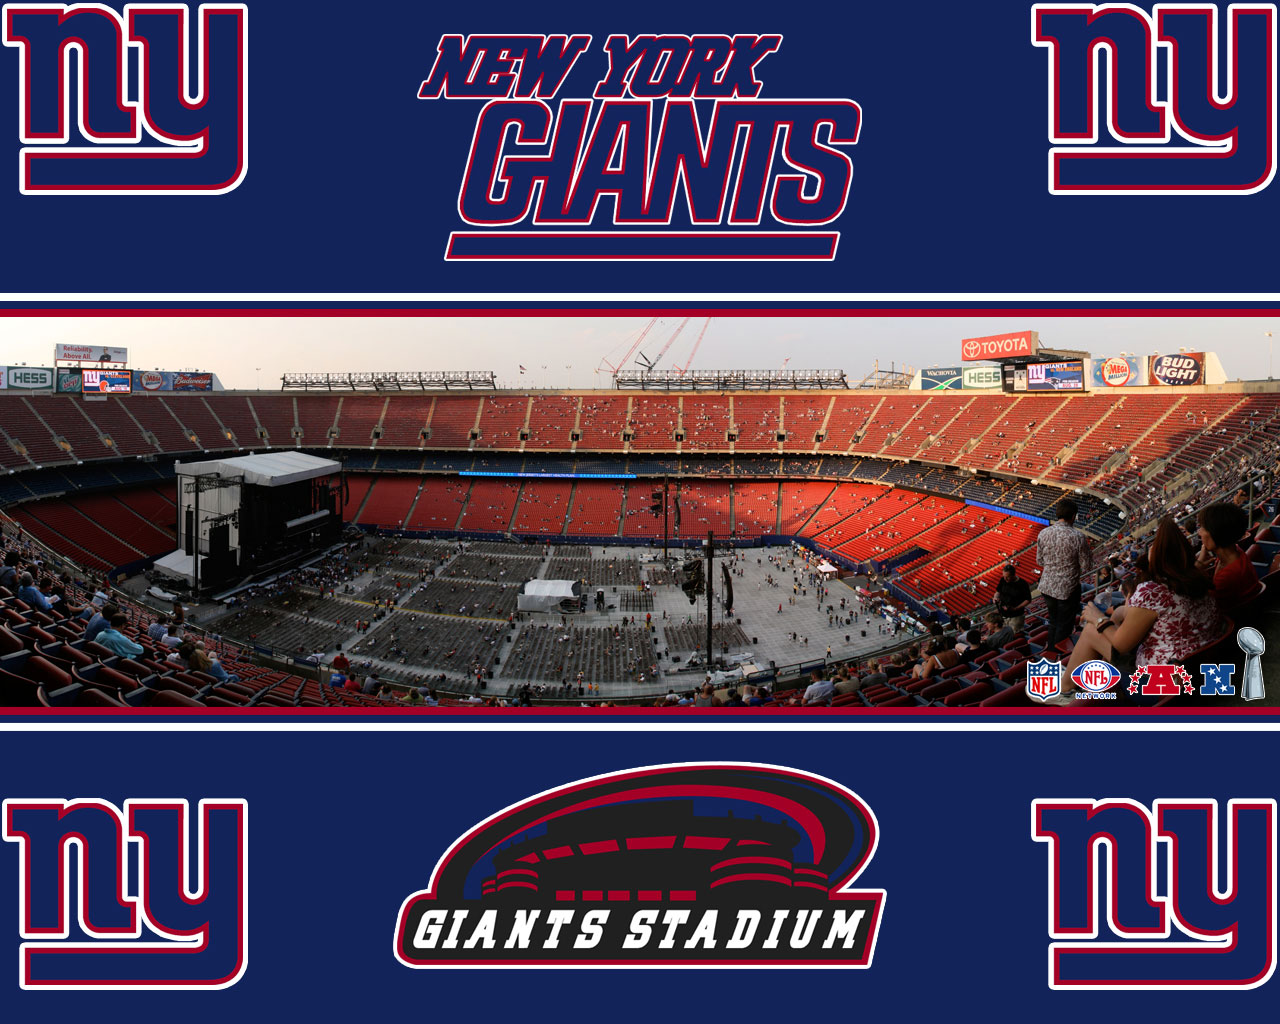 New york giants desktop computer wallpapers